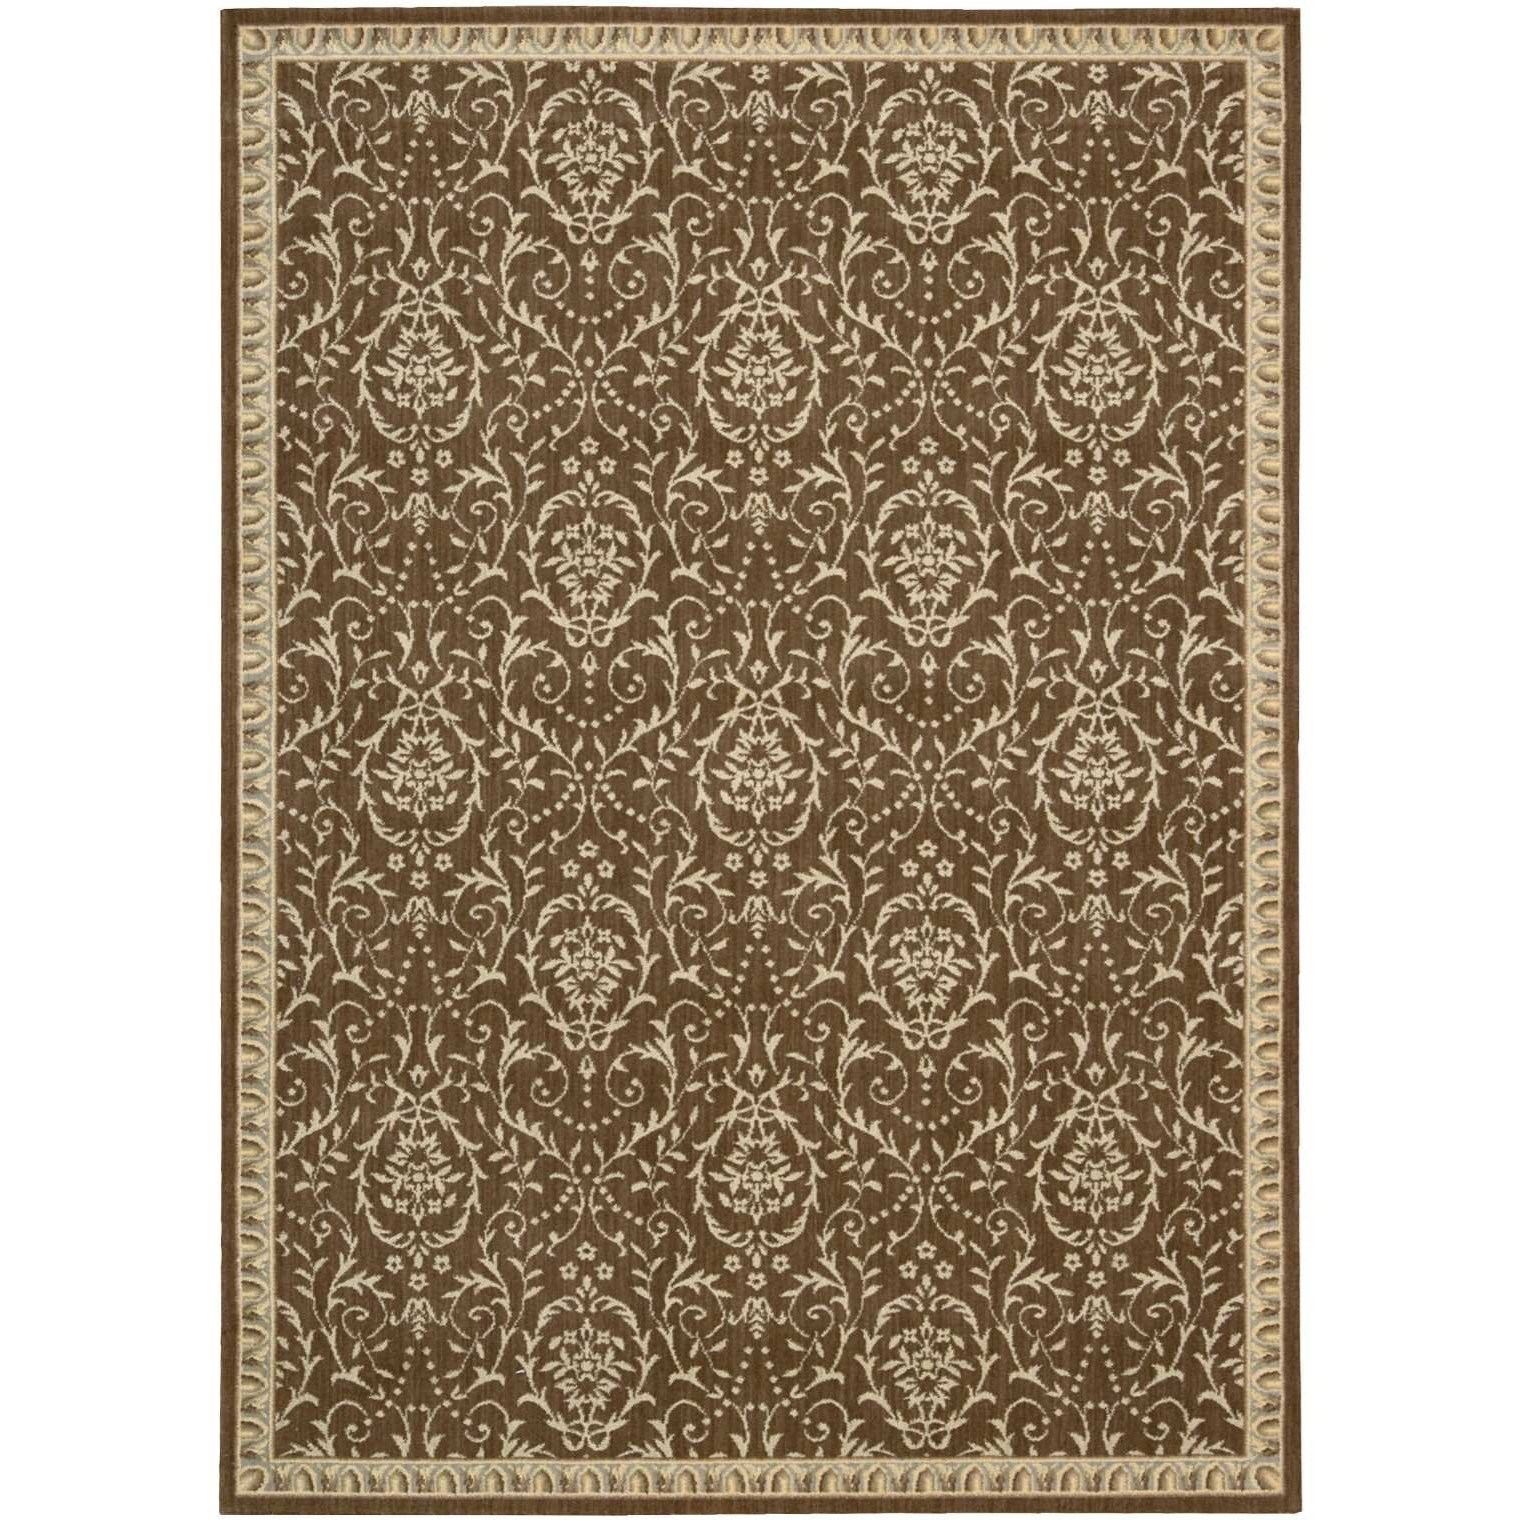 """Riviera 2' x 2'9"""" Chocolate Rectangle Rug by Nourison at Home Collections Furniture"""